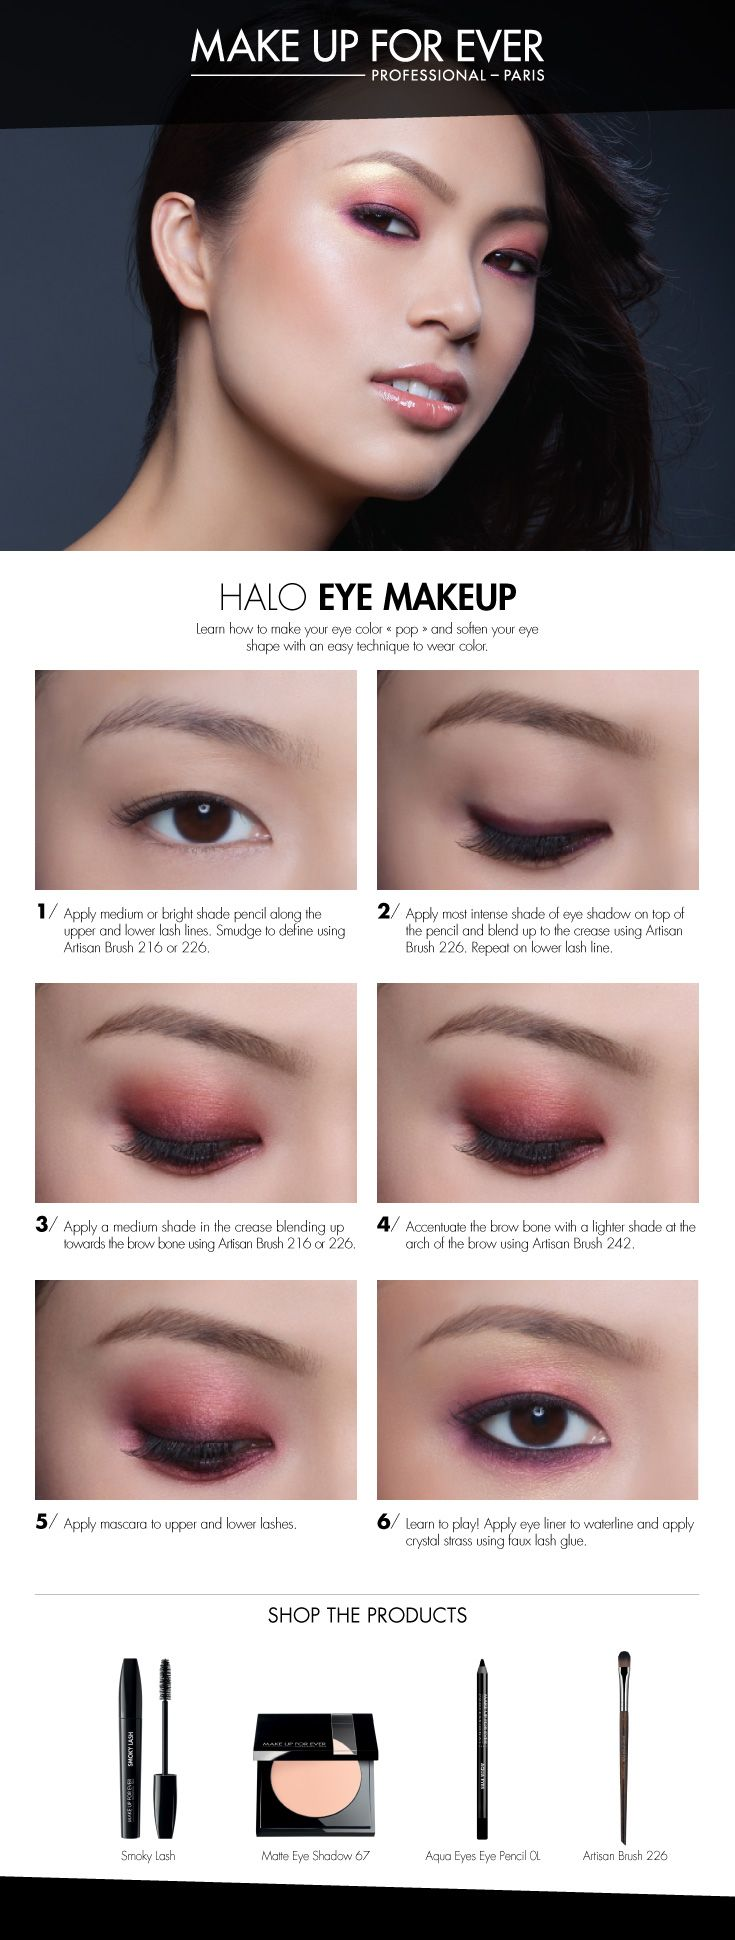 Halo Eye Makeup #howto Courtesy Of #makeupforever #sephora #makeuptutorial